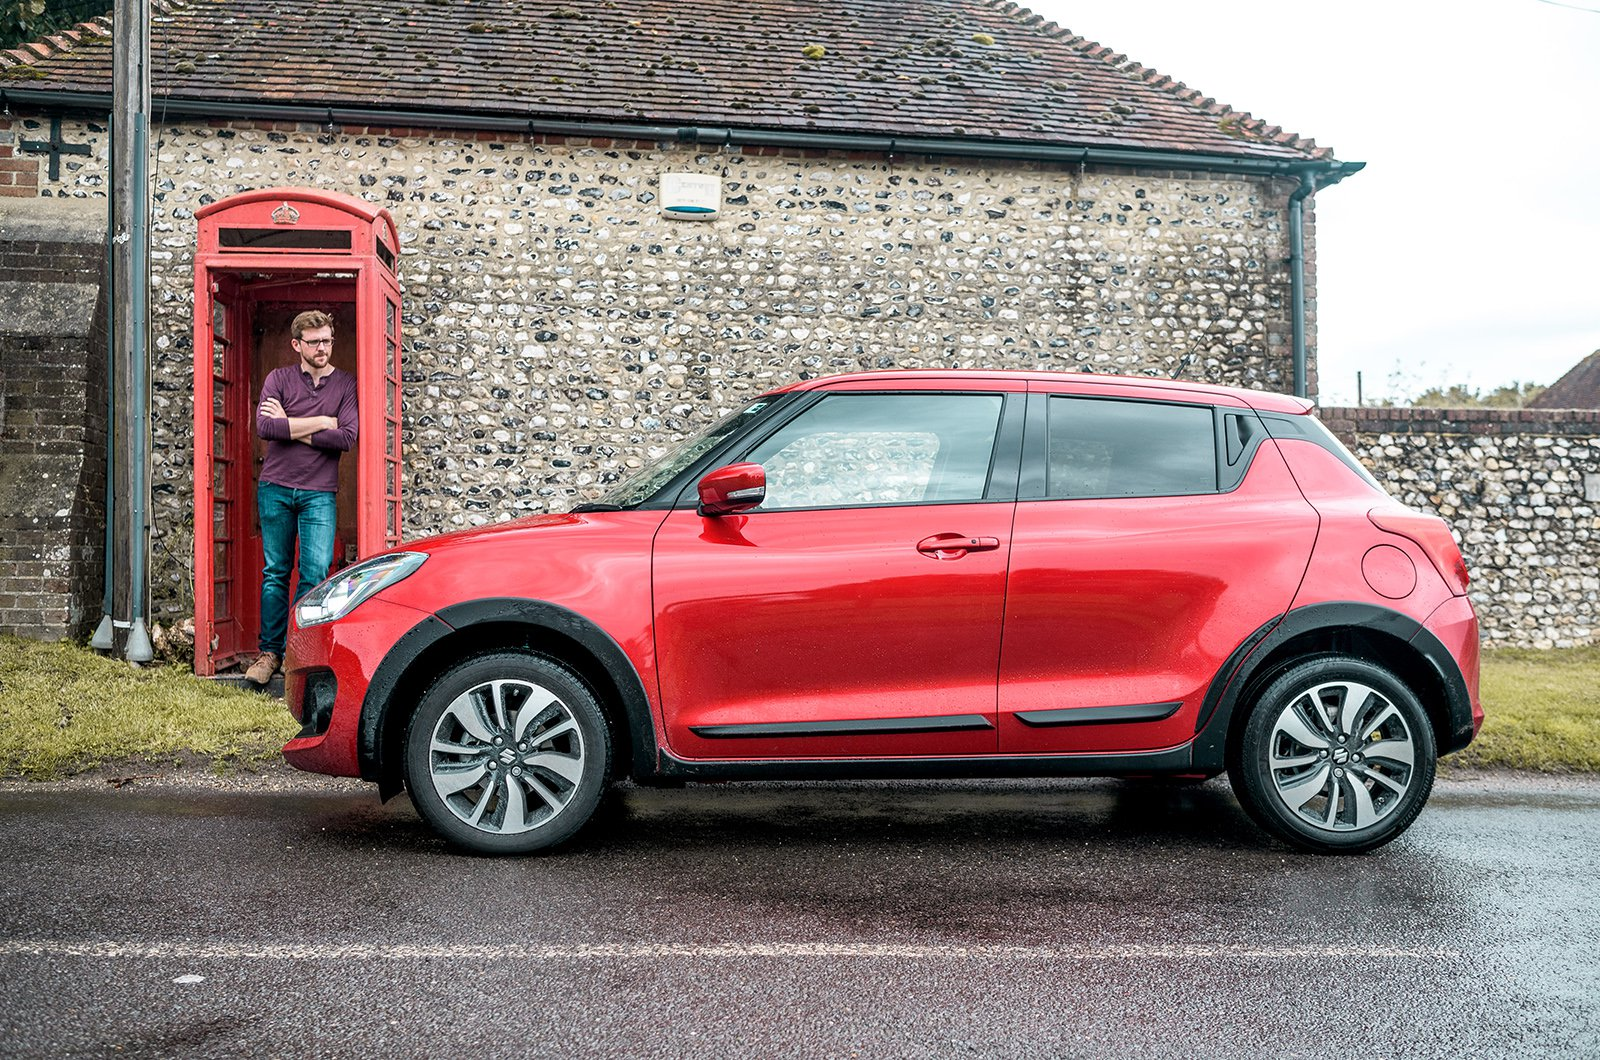 Used Suzuki Swift Hybrid (17-present) long term test review